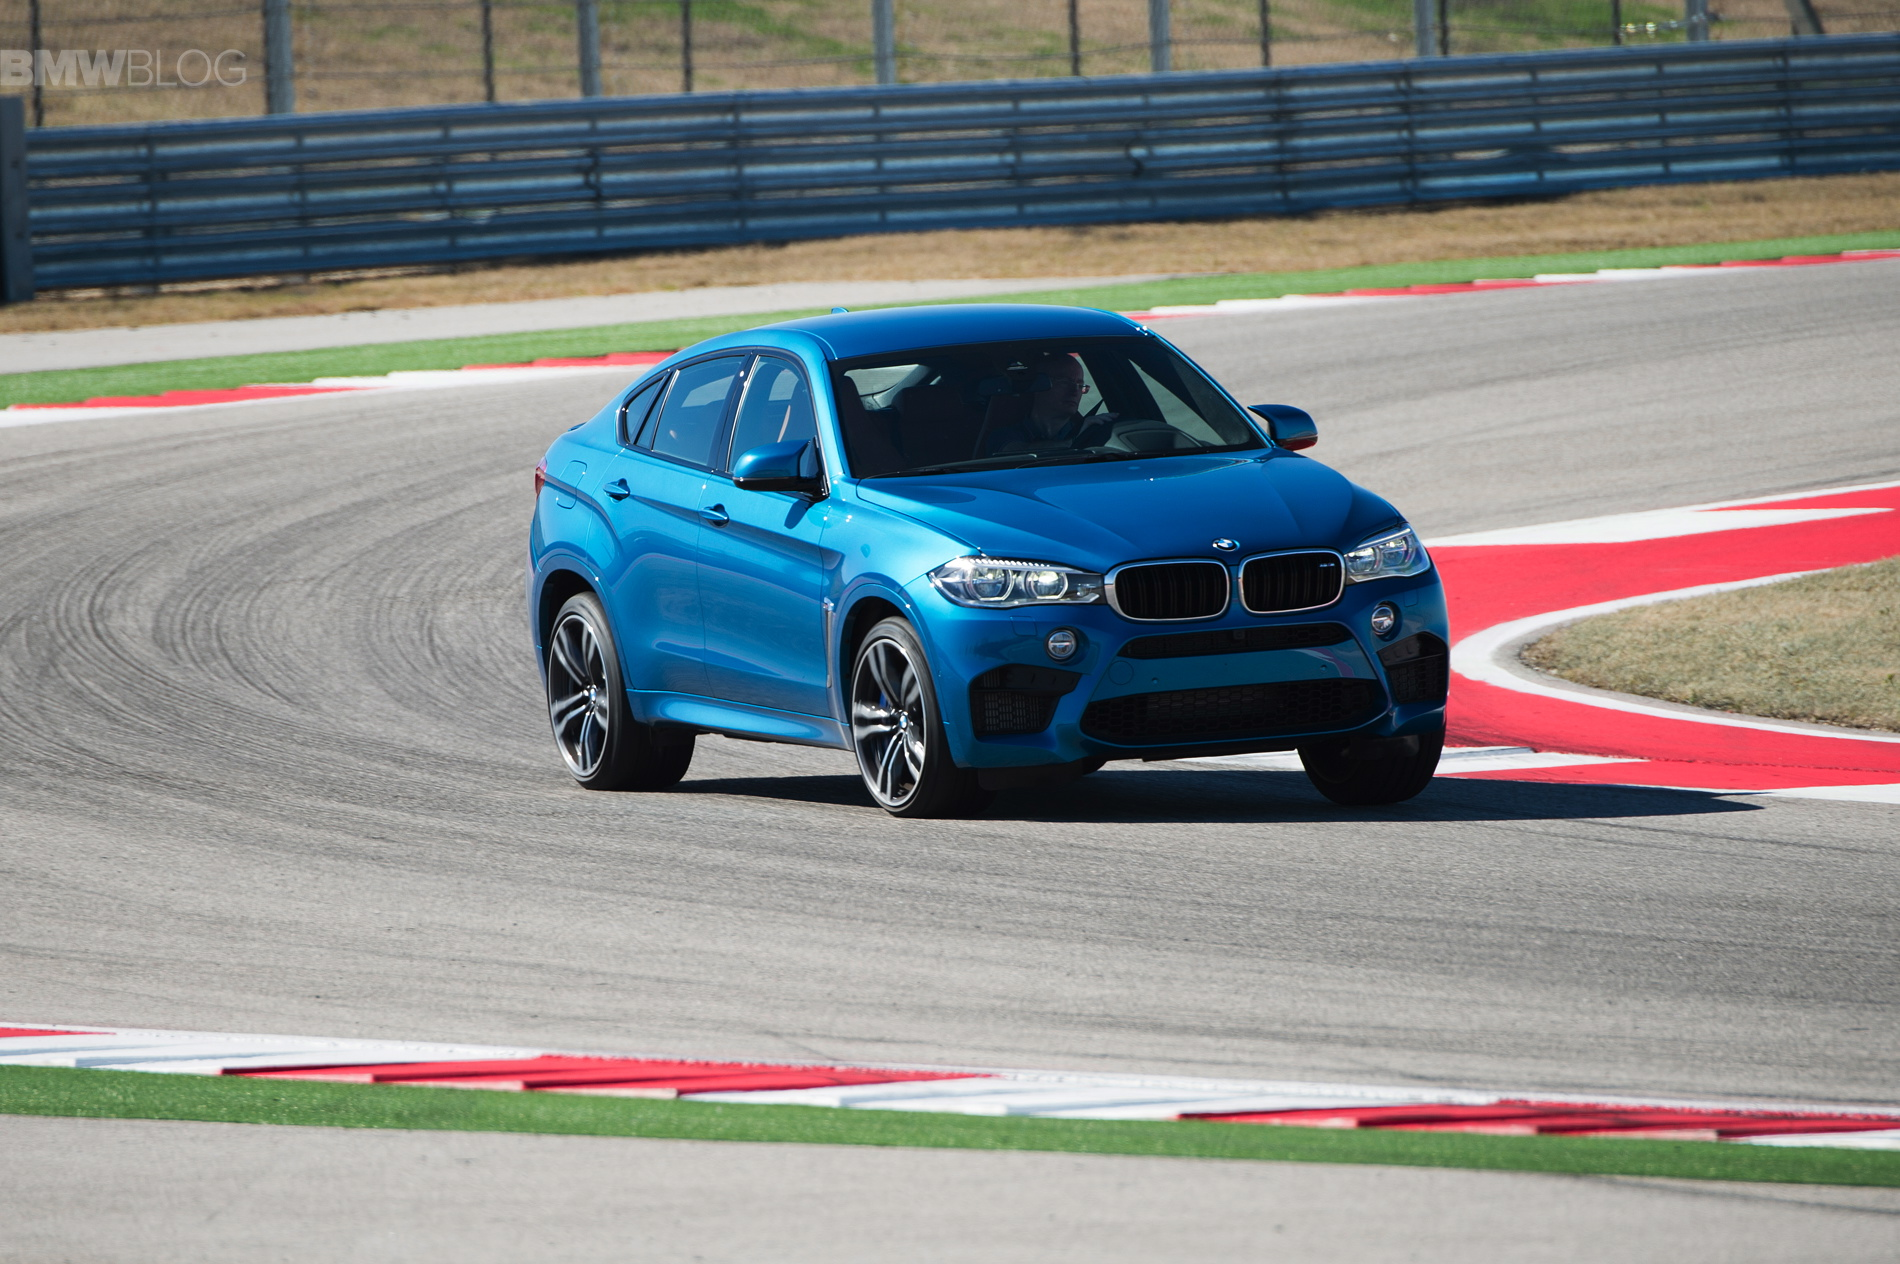 2015 bmw x6 m race track images 25